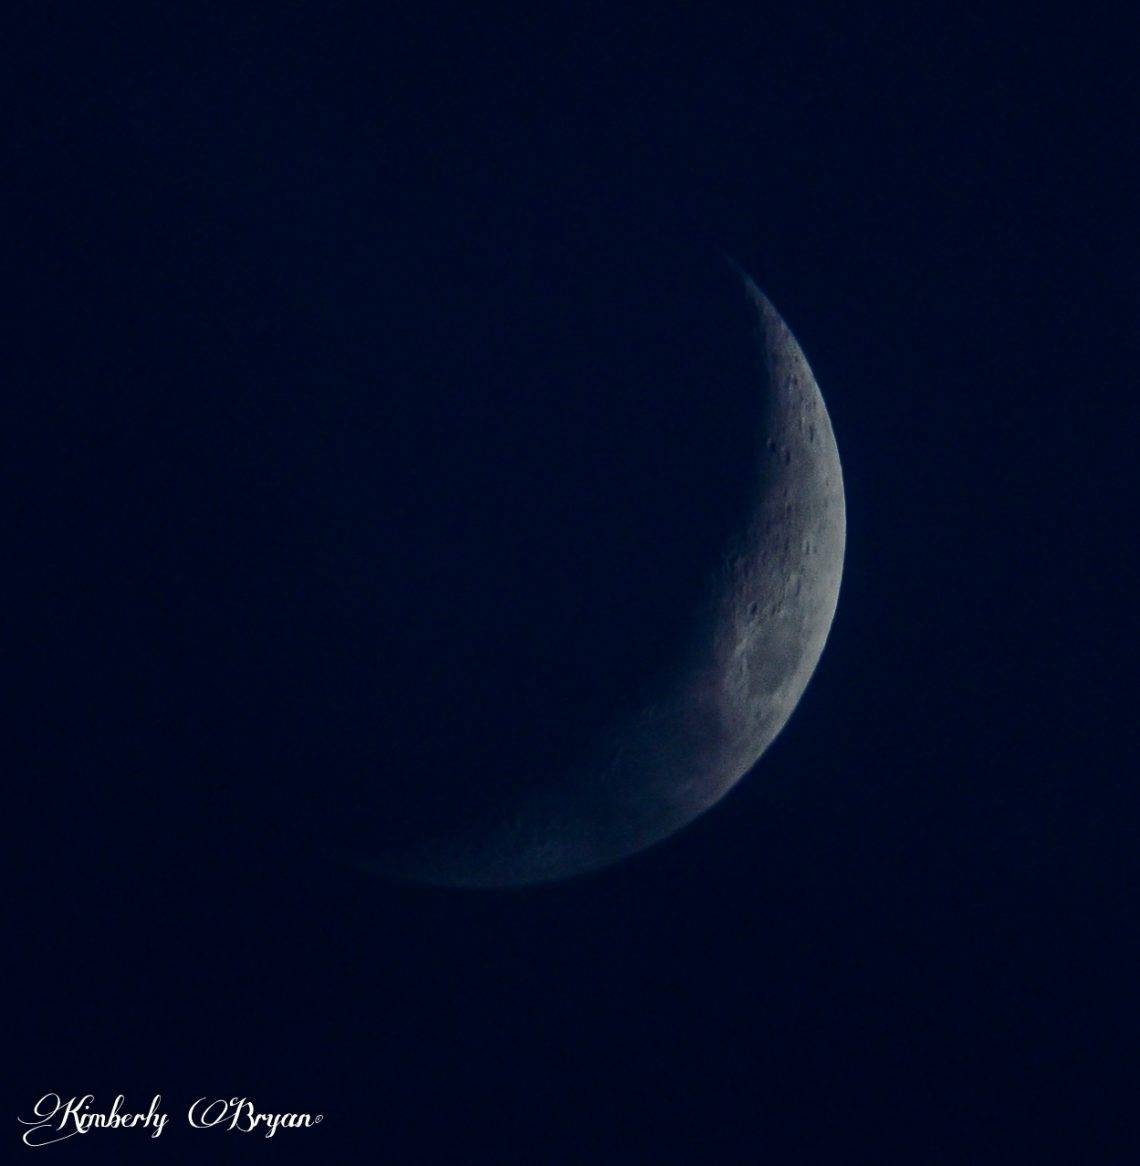 Looking at the January Moon Waxing Crescent. Very thick clouds passing over the moon. Creating a very blue hue.